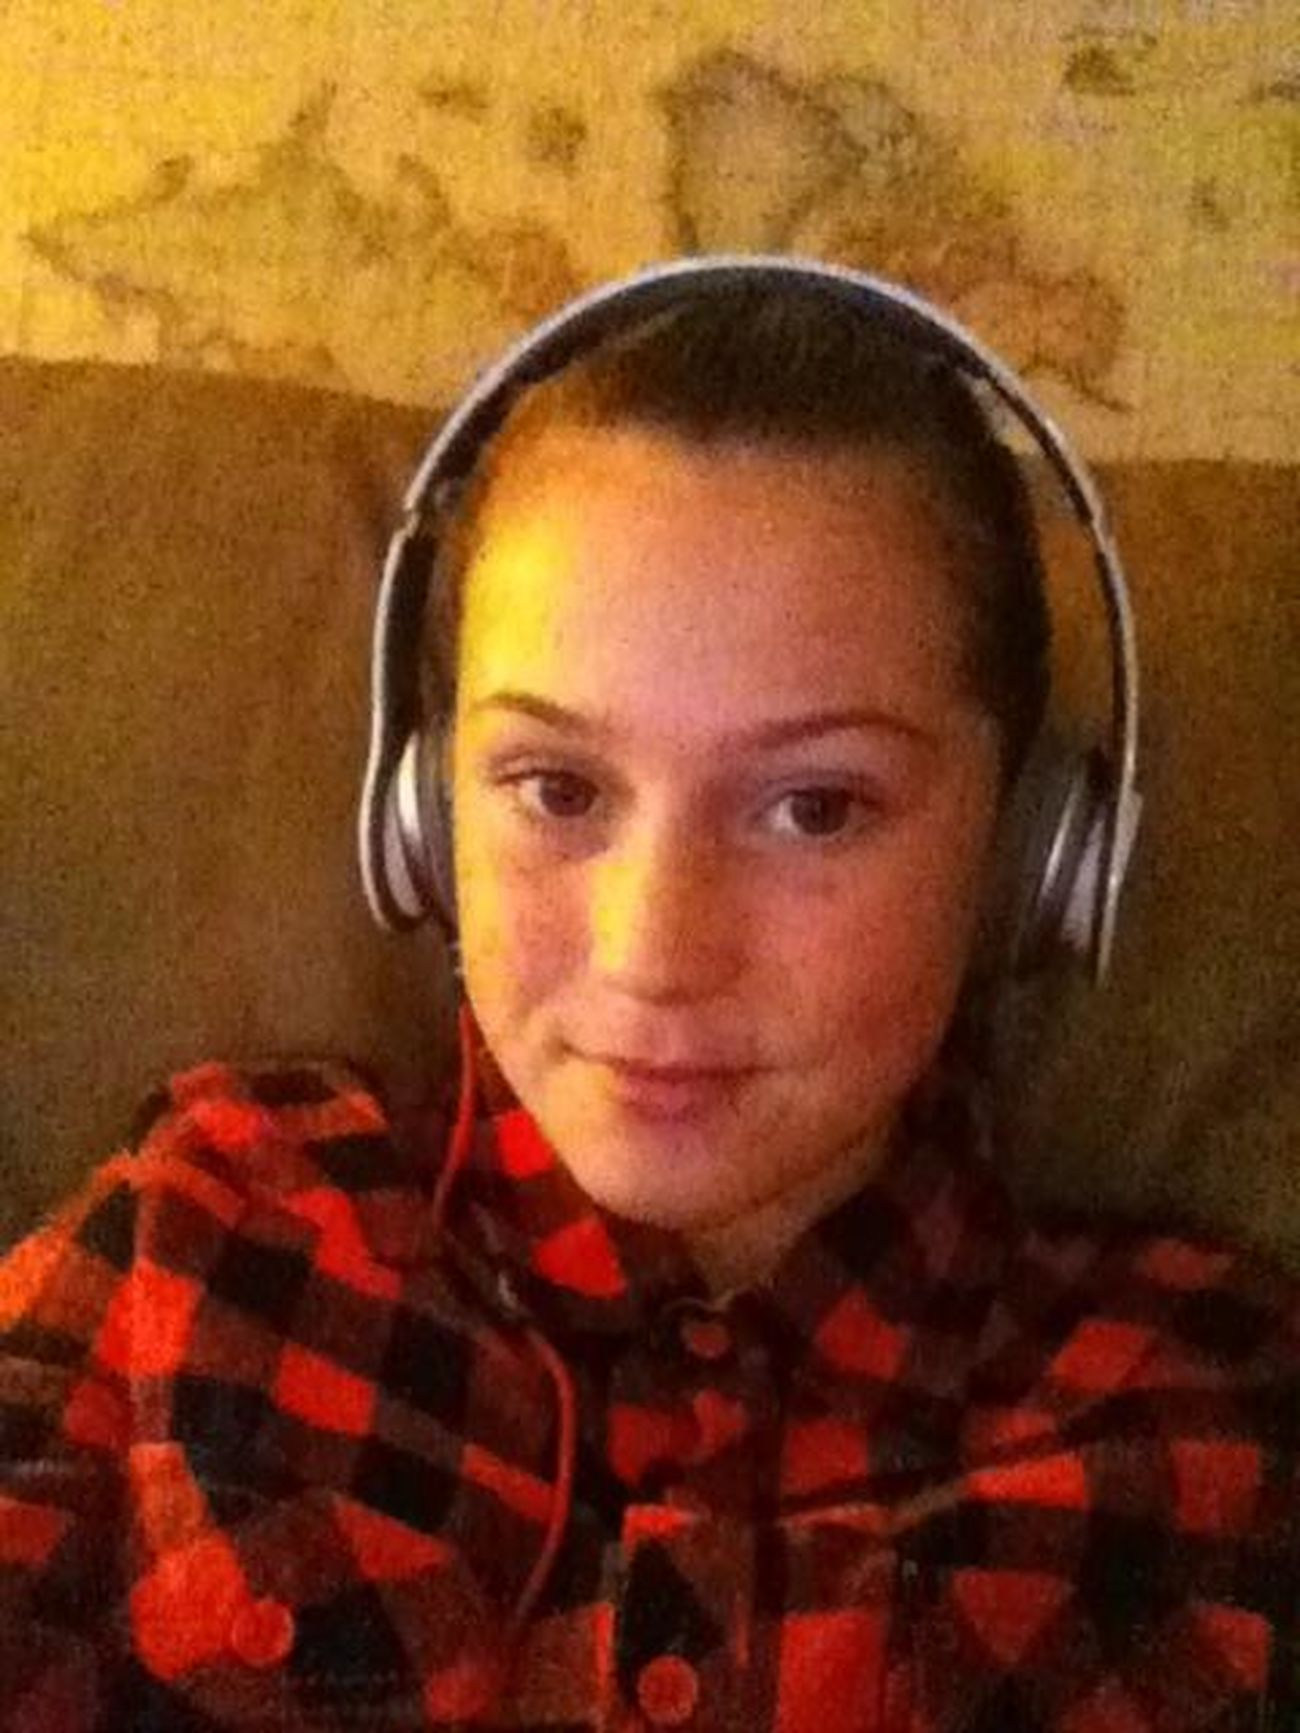 Having Fun With My New Beats On Christmas